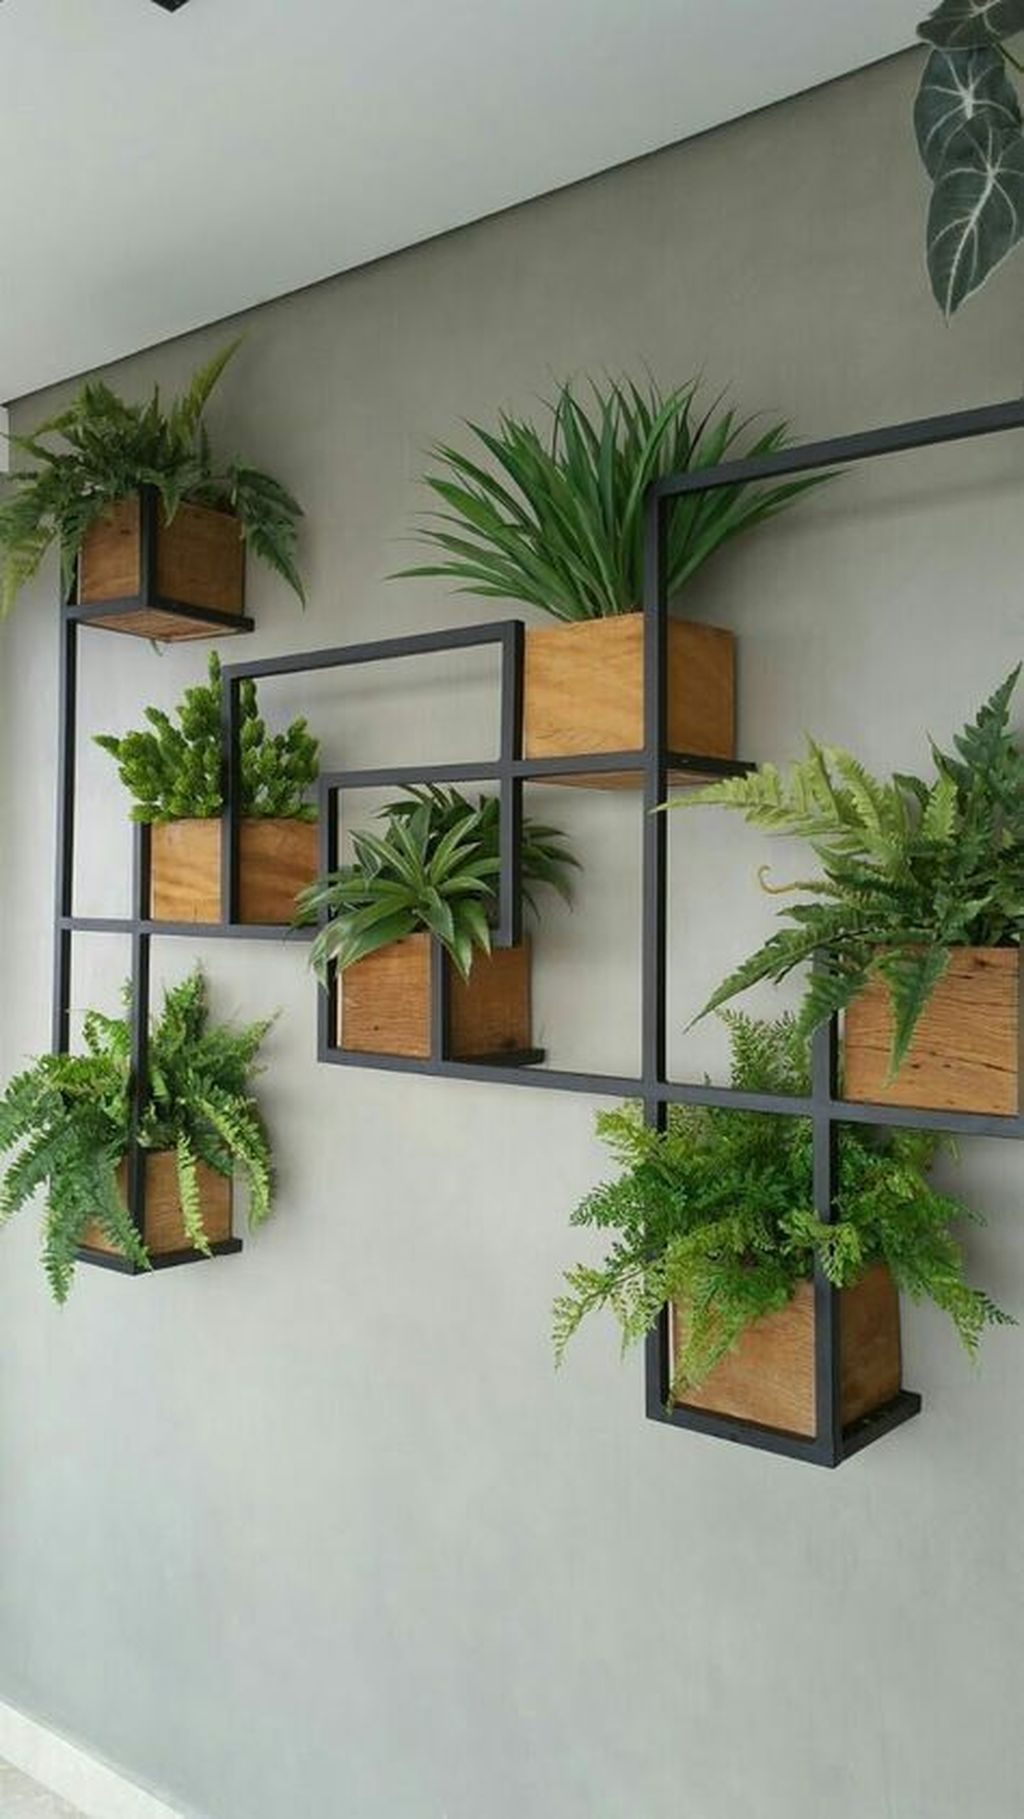 Popular Vertical Garden Wall For Outdoors Decor 11